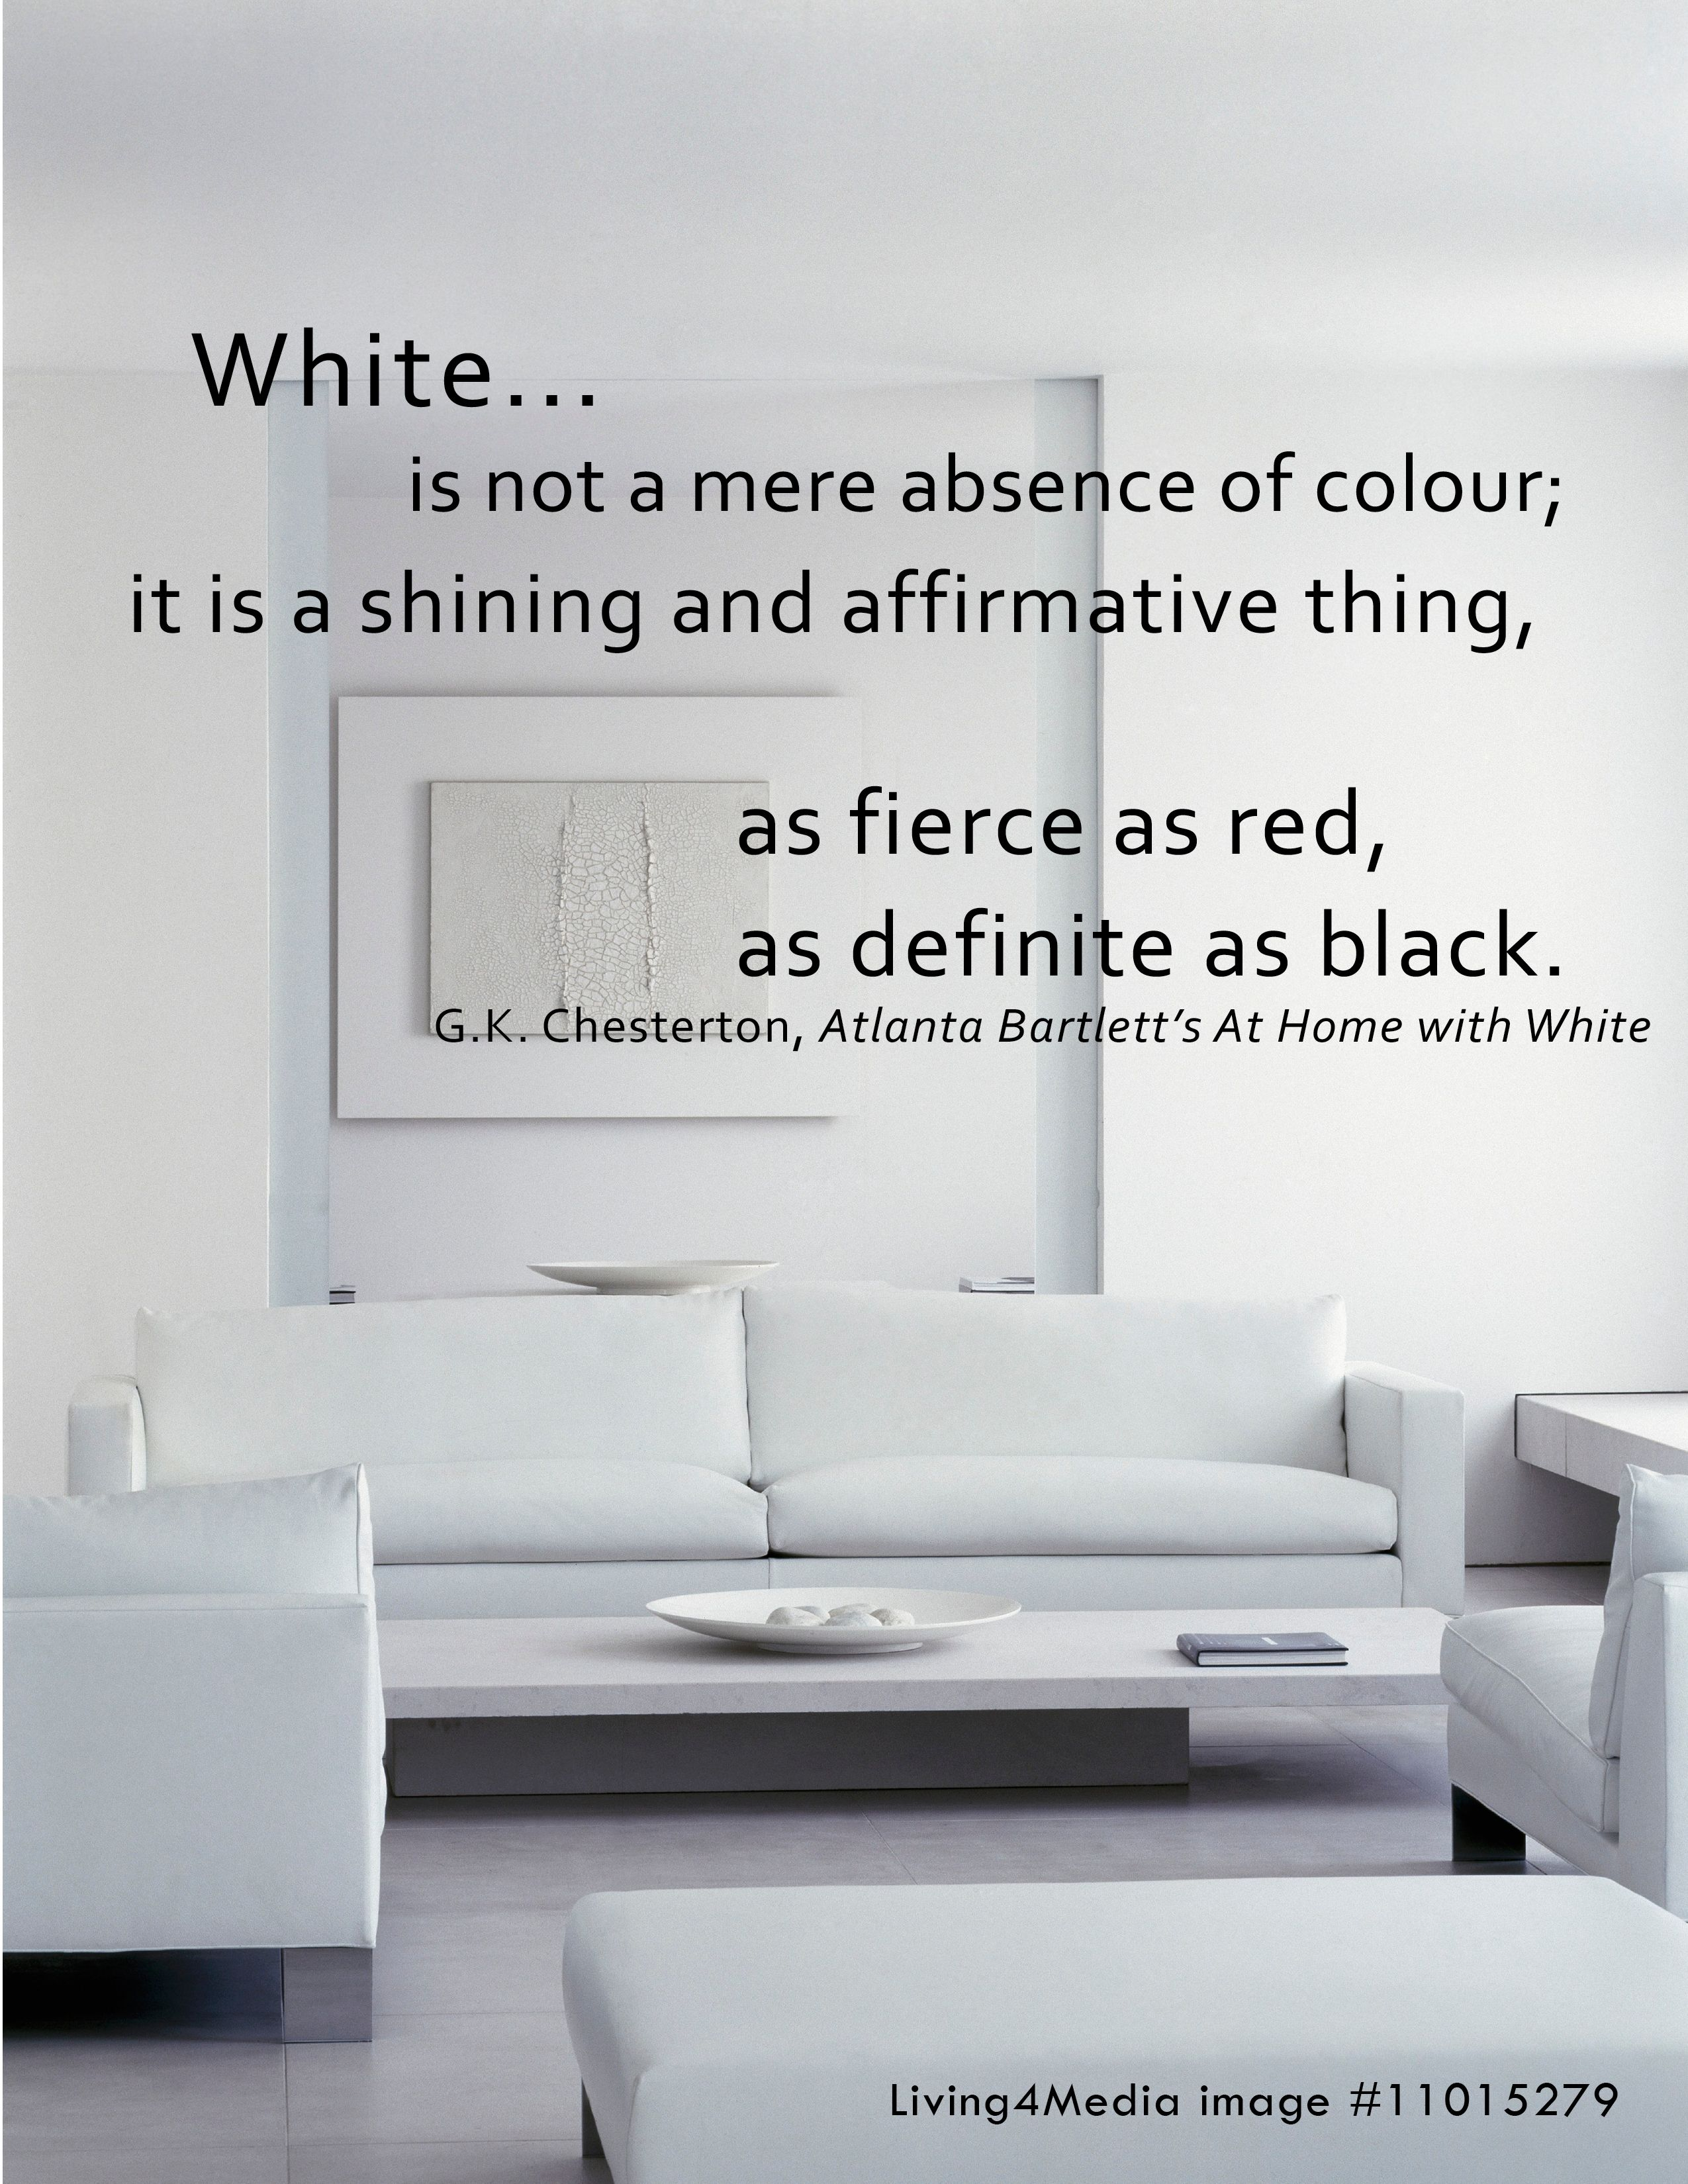 Ideas For Beautiful Interior Design Is Not A Mere Absence Of Colour